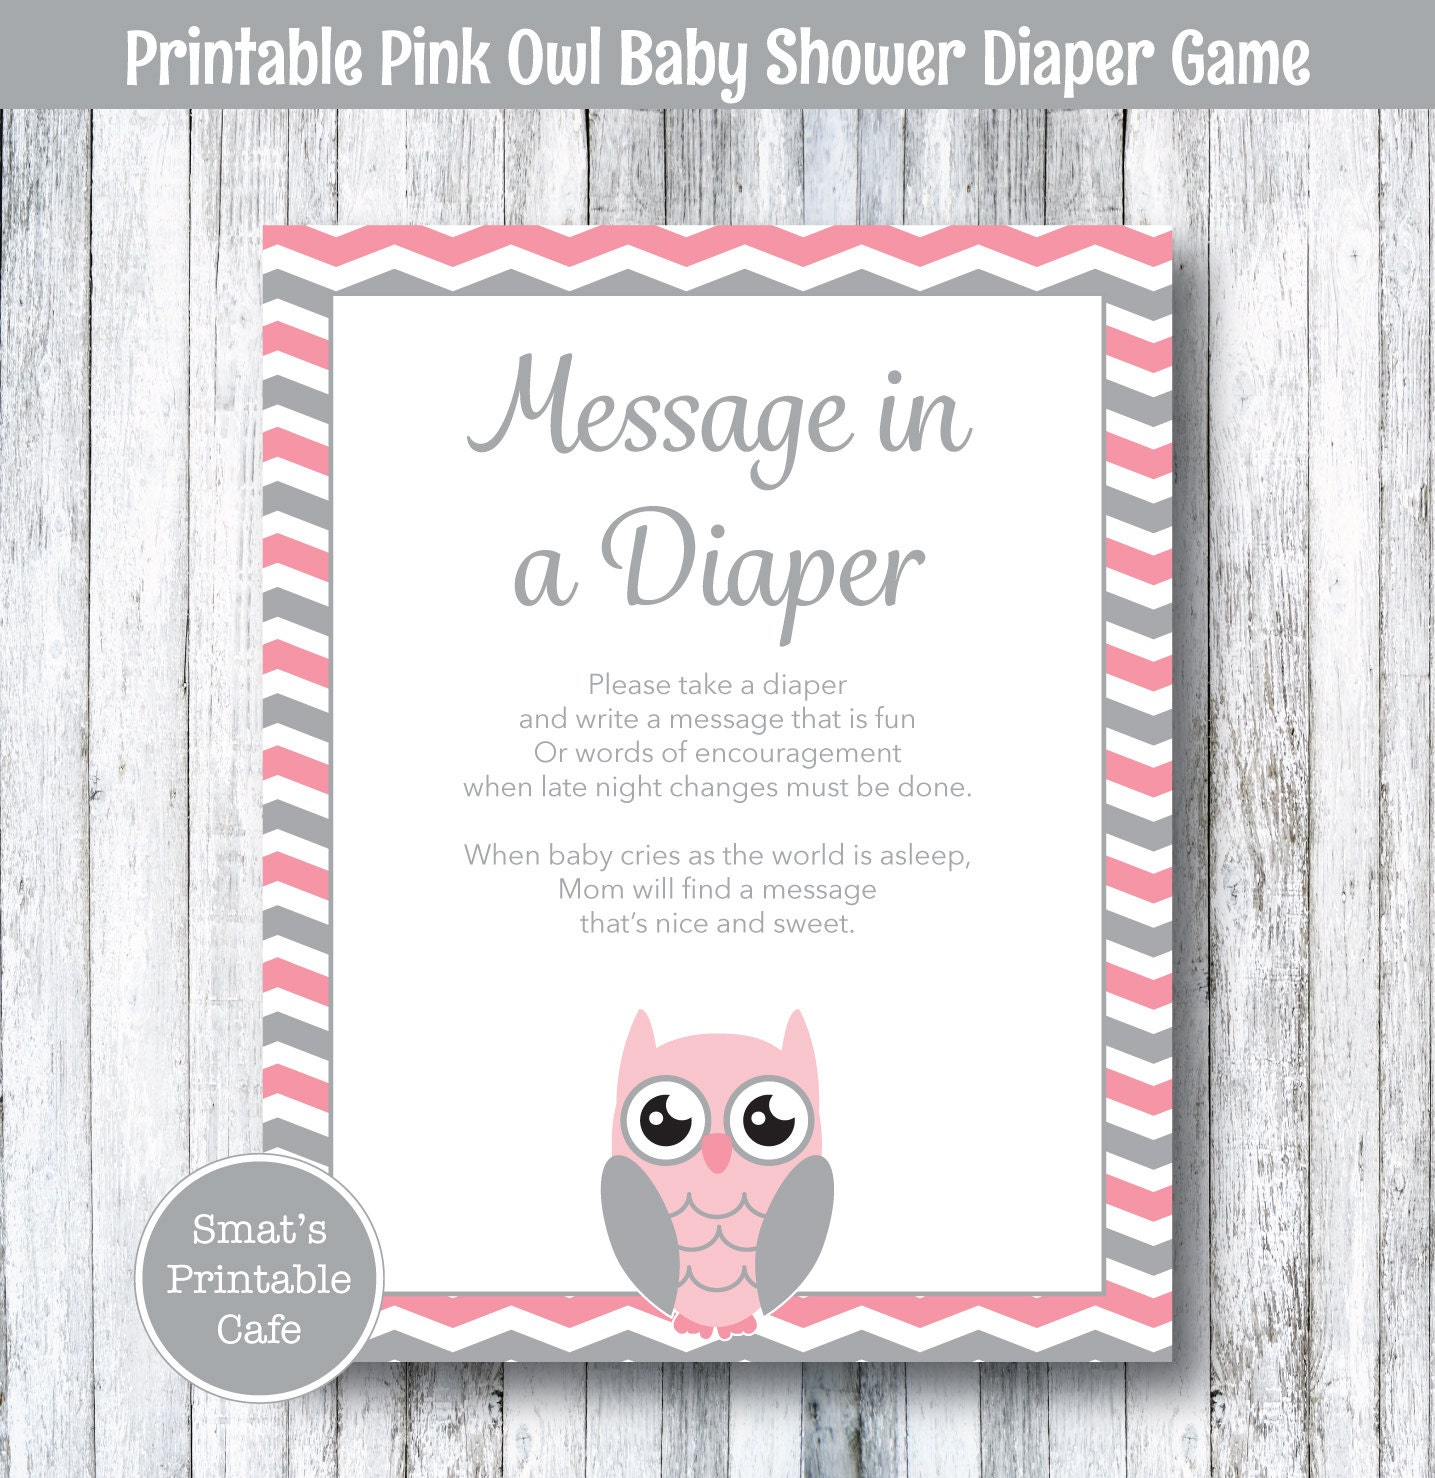 Pink Owl Baby Shower Diaper Message Game PRINTABLE Chevron